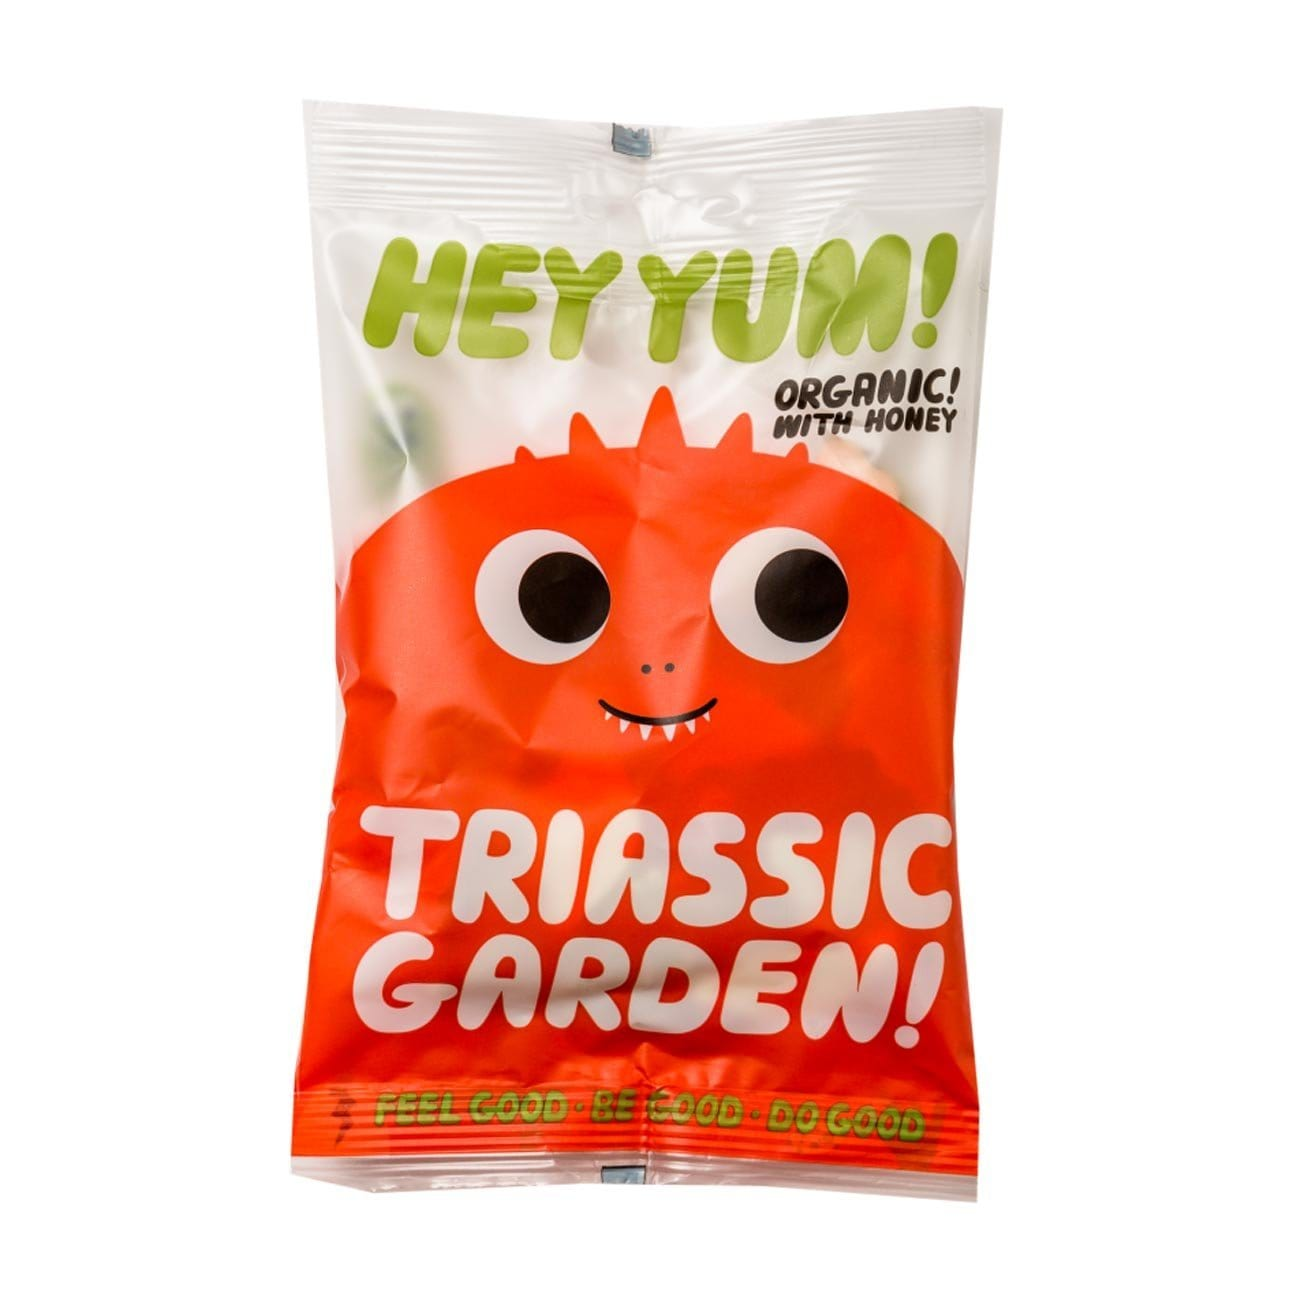 Triassic Garden Organic Sweets